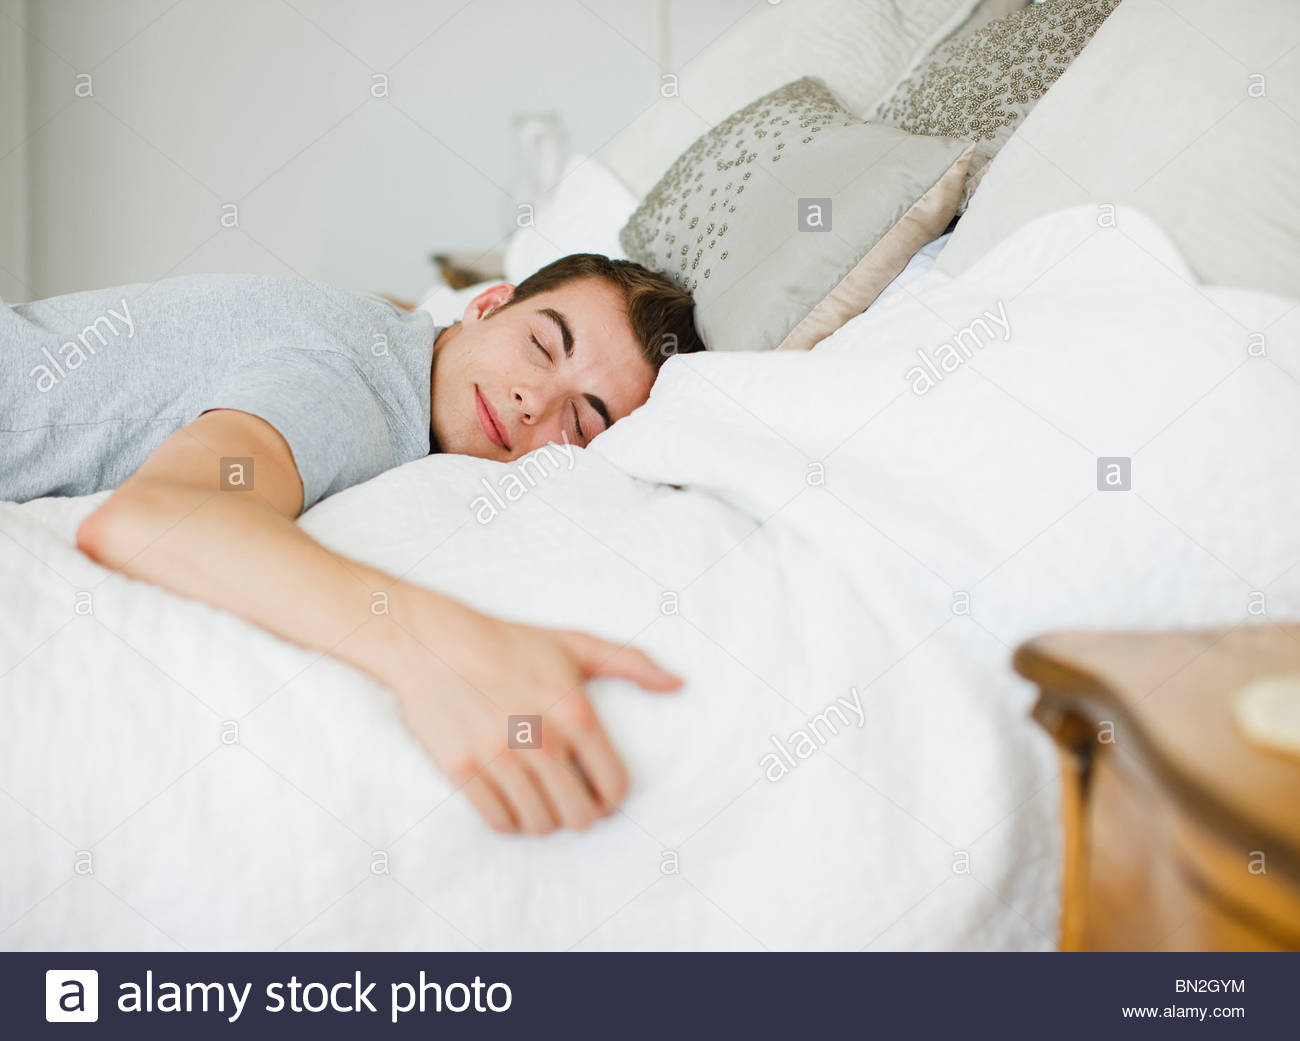 happy man laying on bed stock photo, royalty free image: 30175368